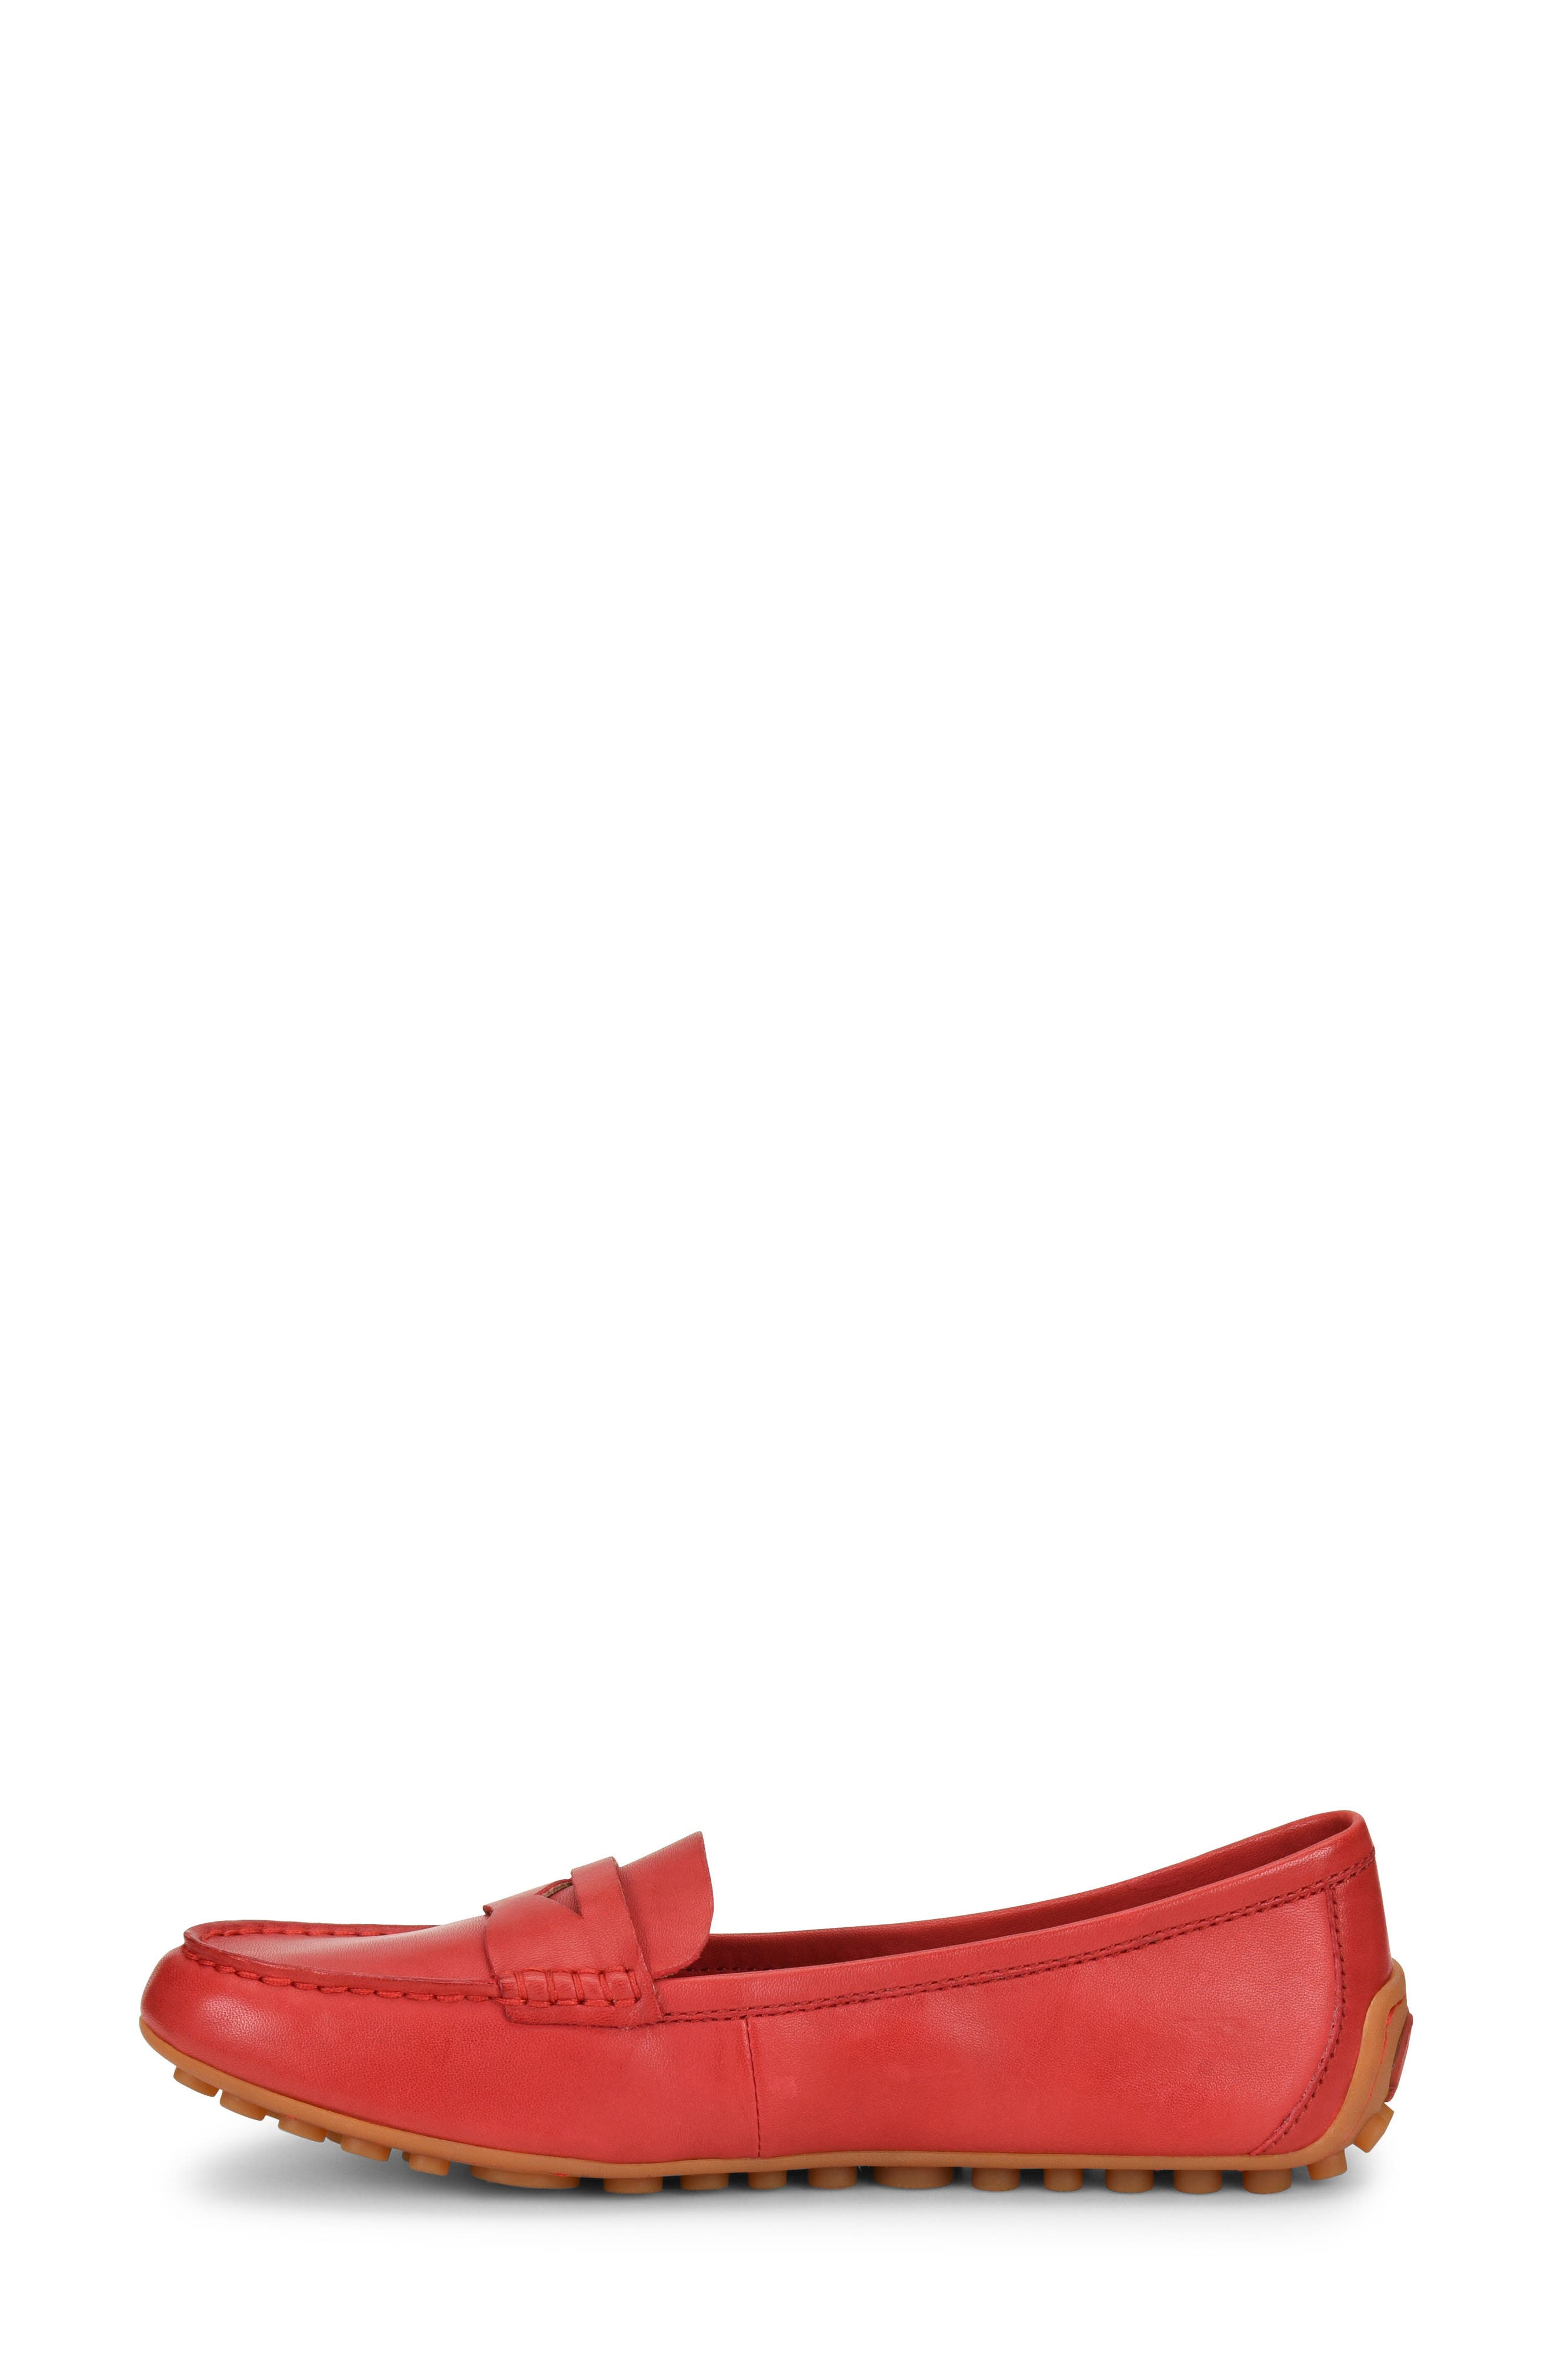 Malena Driving Loafer,                             Alternate thumbnail 3, color,                             RED LEATHER